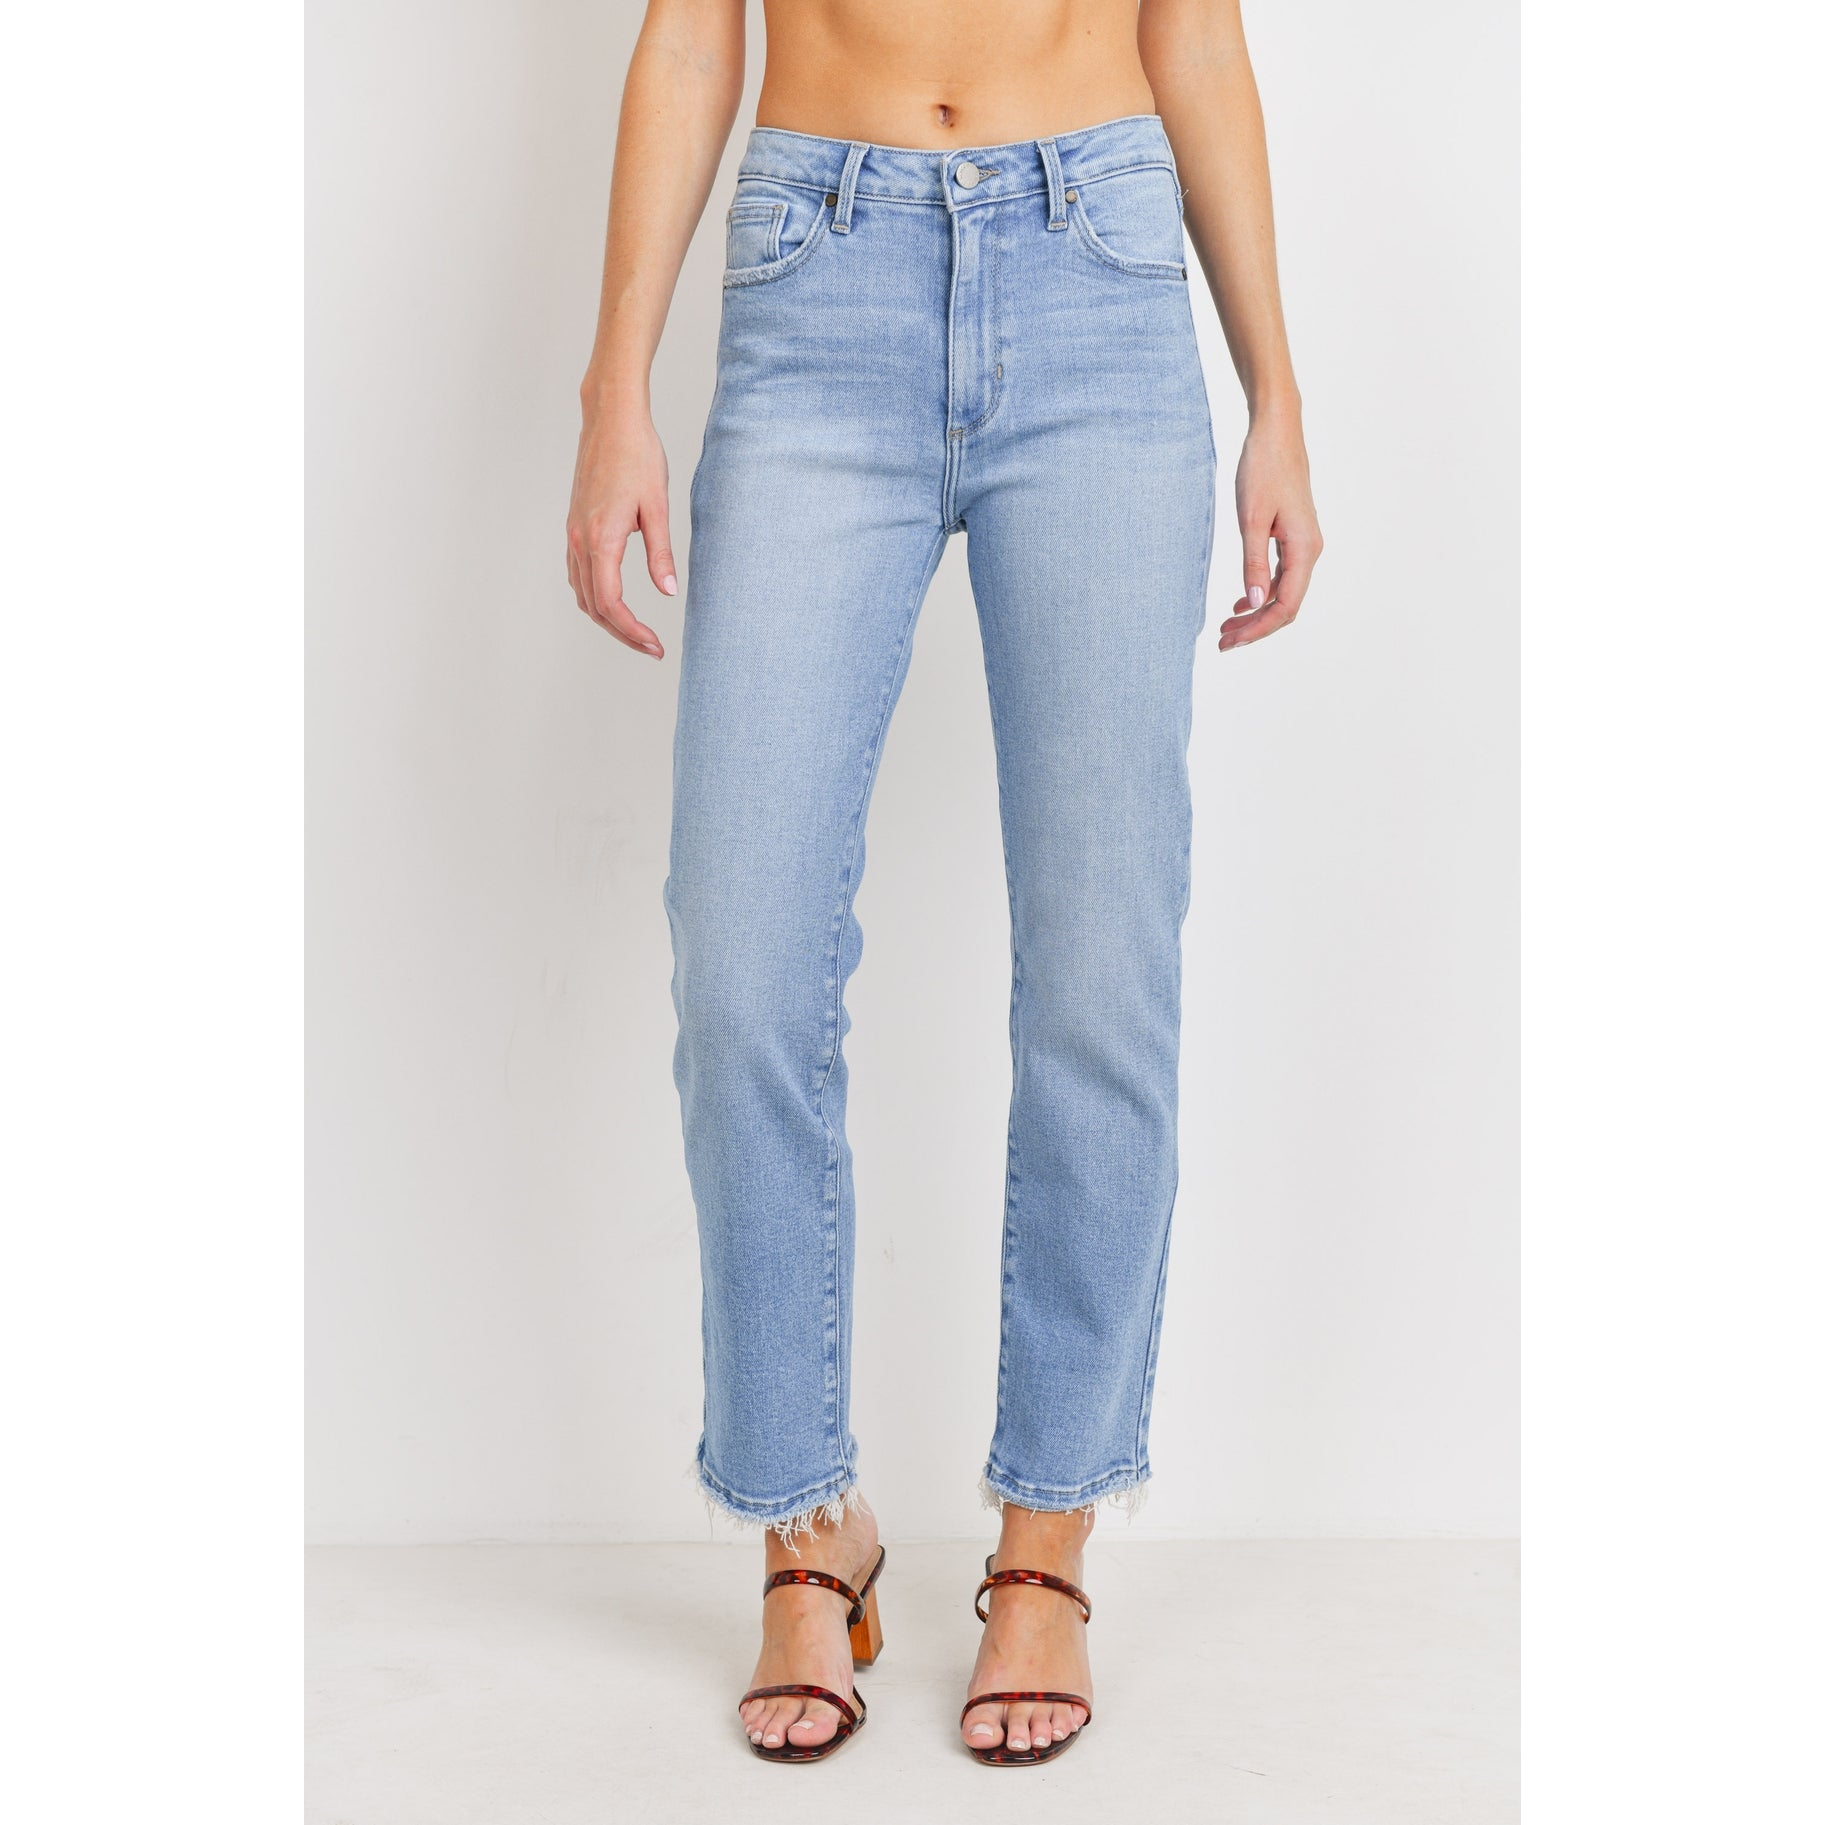 The Terri Clean High Rise Straight Leg Jeans by Just Black Denim - Light Wash